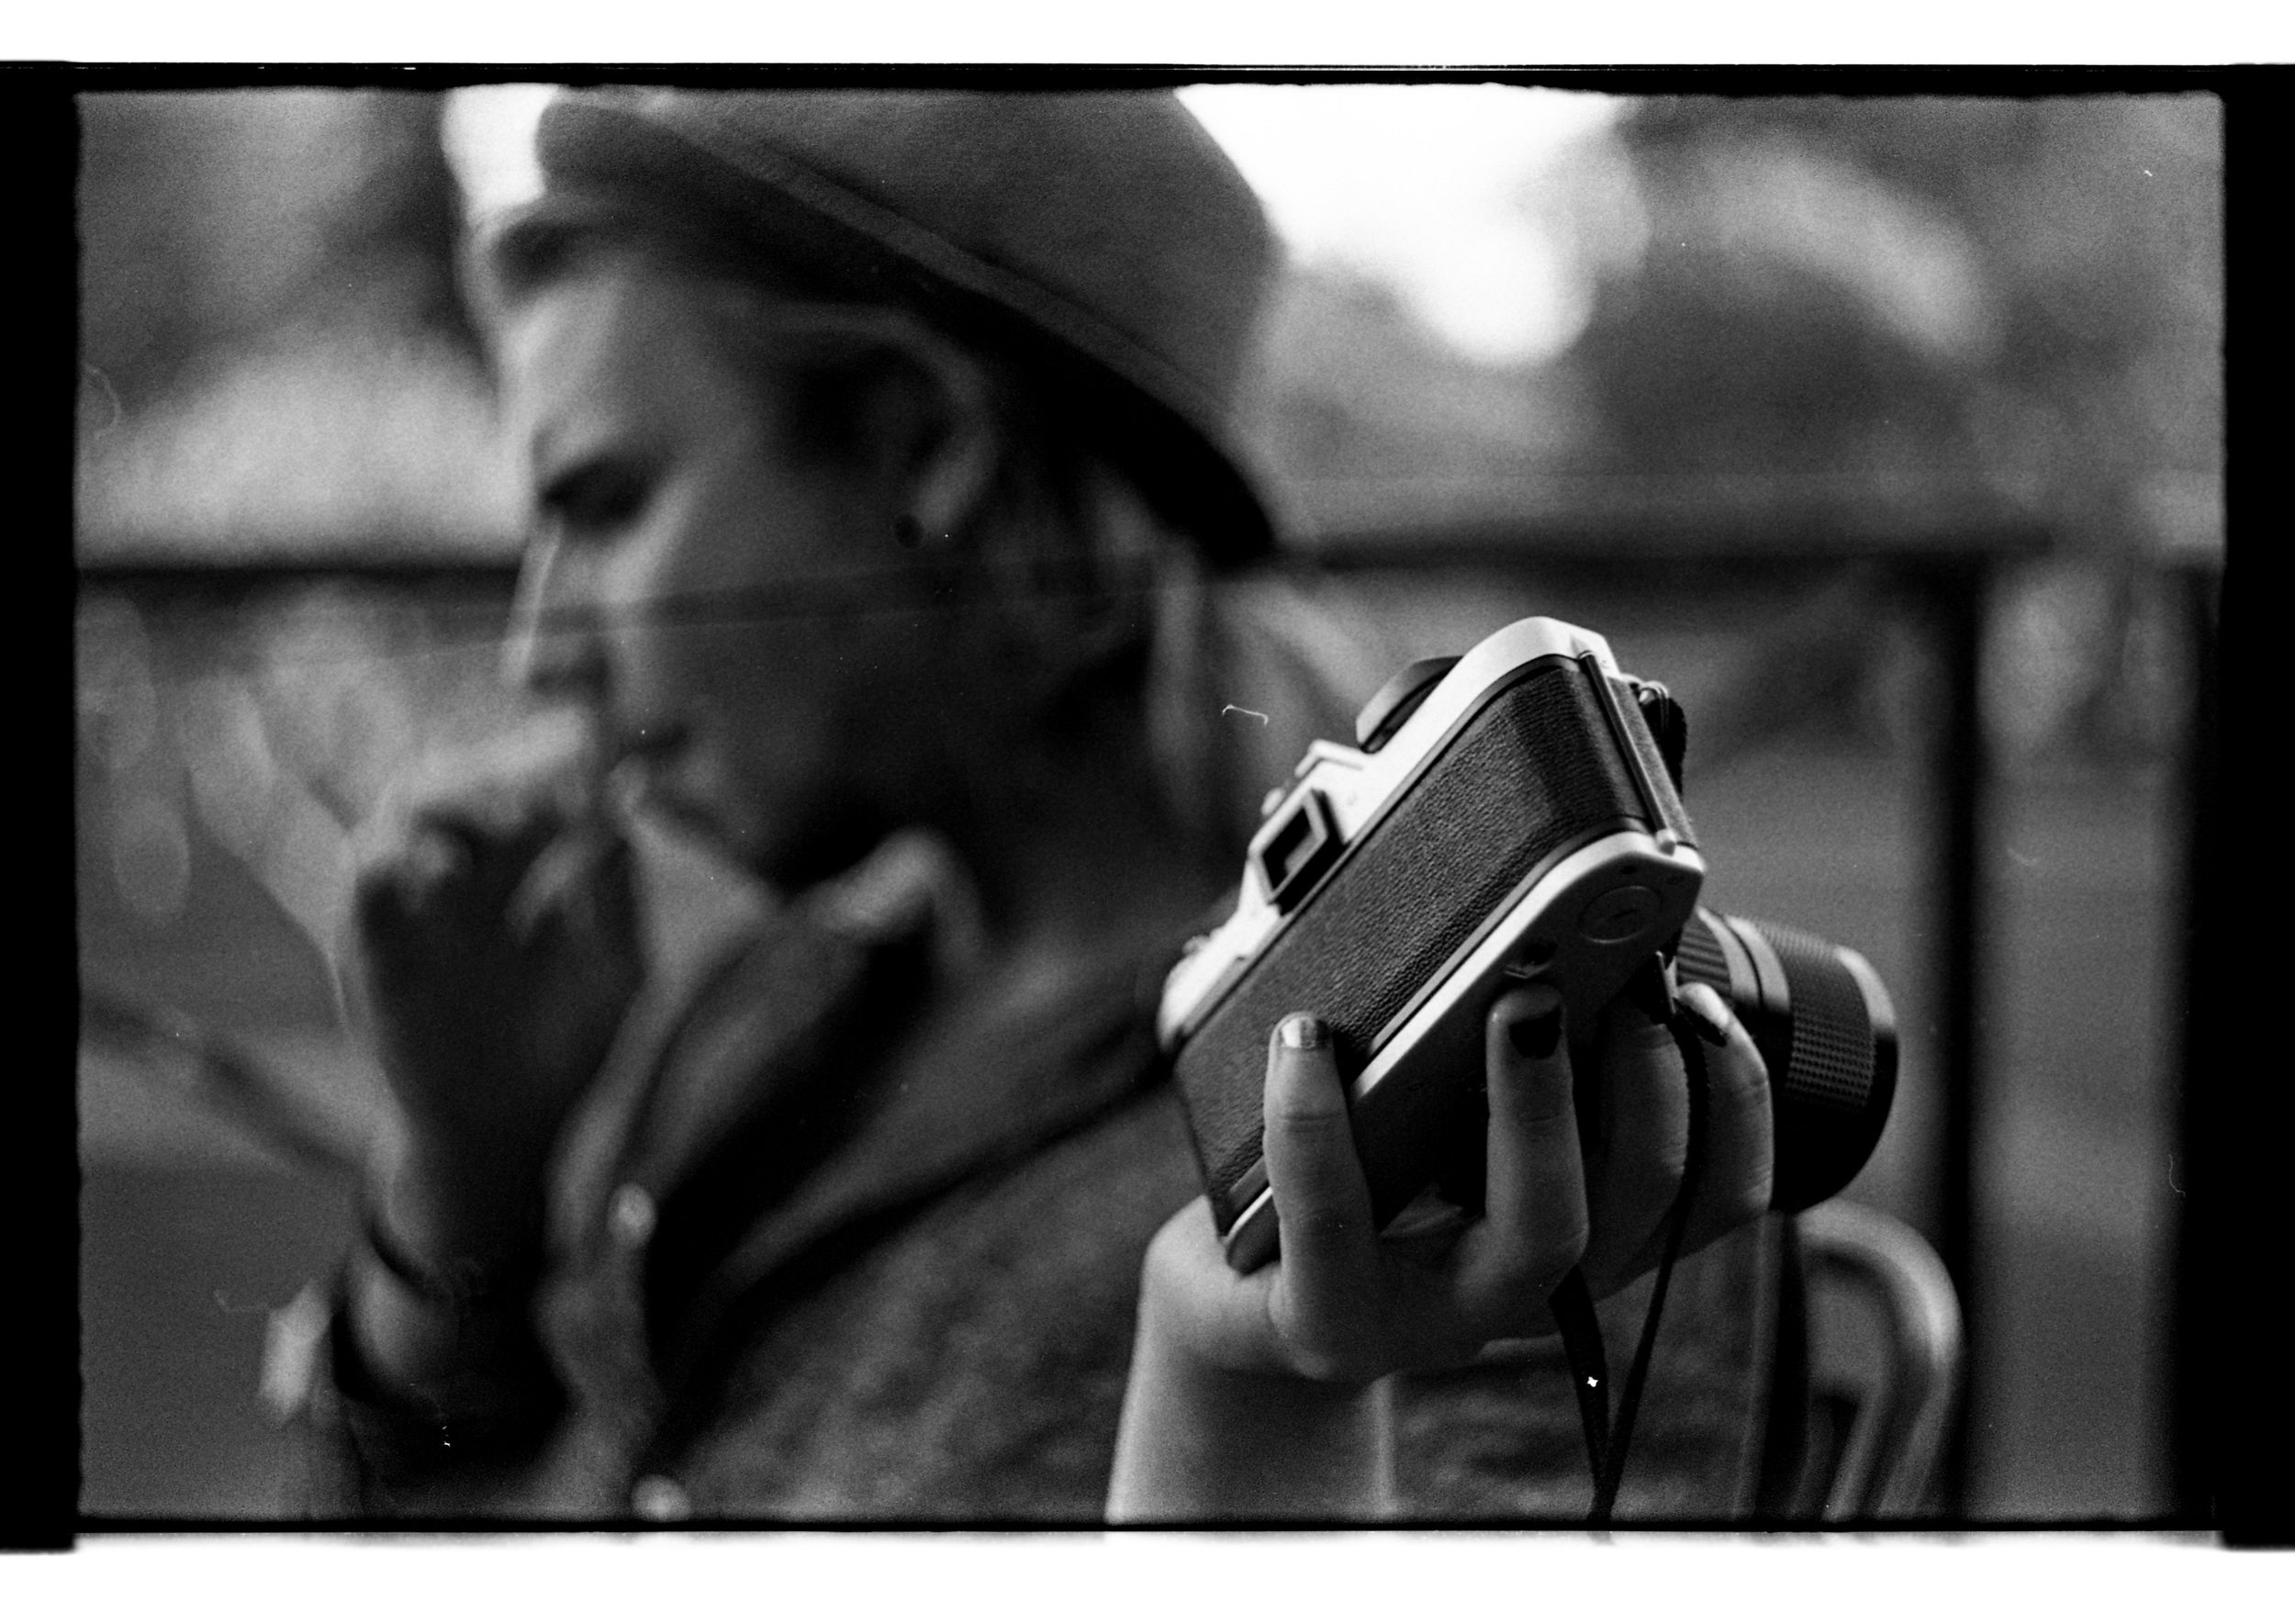 Markus and his camera.  Shot with a Canon EOS 1000FN and Helios 58mm f2 lens on classic tri-X